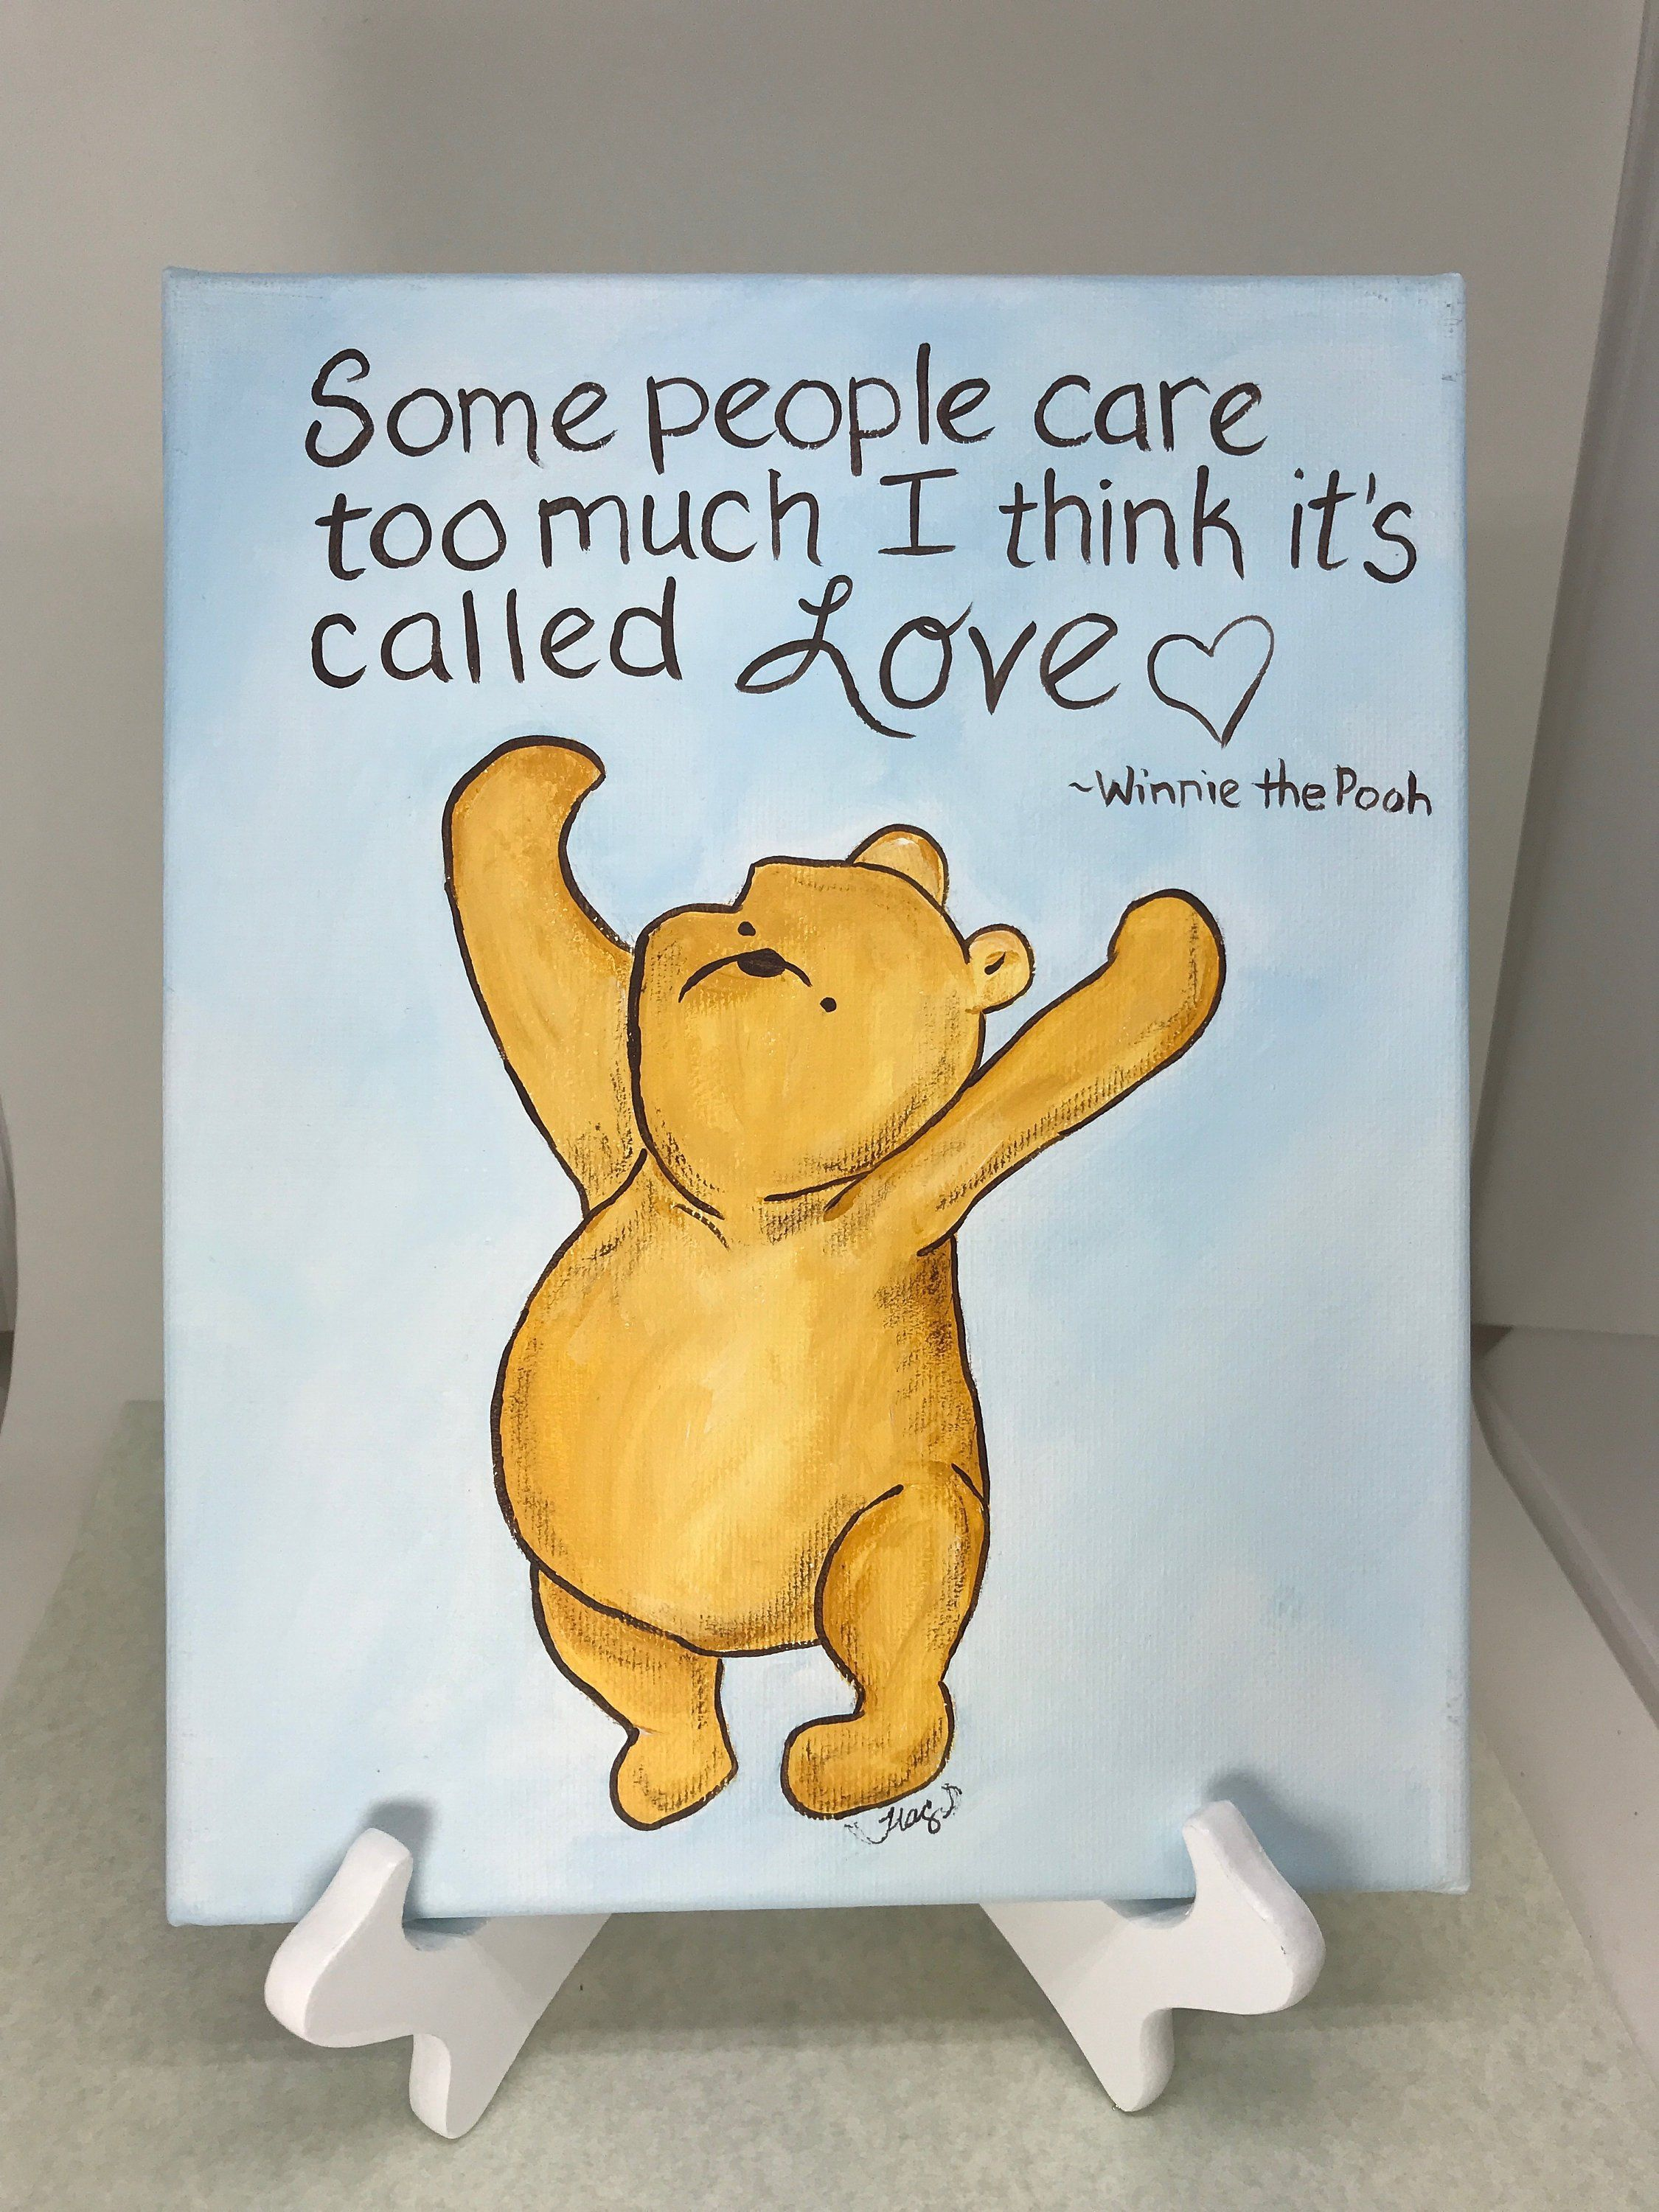 Classic Winnie The Pooh Painted Canvas With Quote About Love Classic Pooh Quote Art By Moonbeamsbeardreams Winnie The Pooh Winnie The Pooh Quotes Pooh Quotes